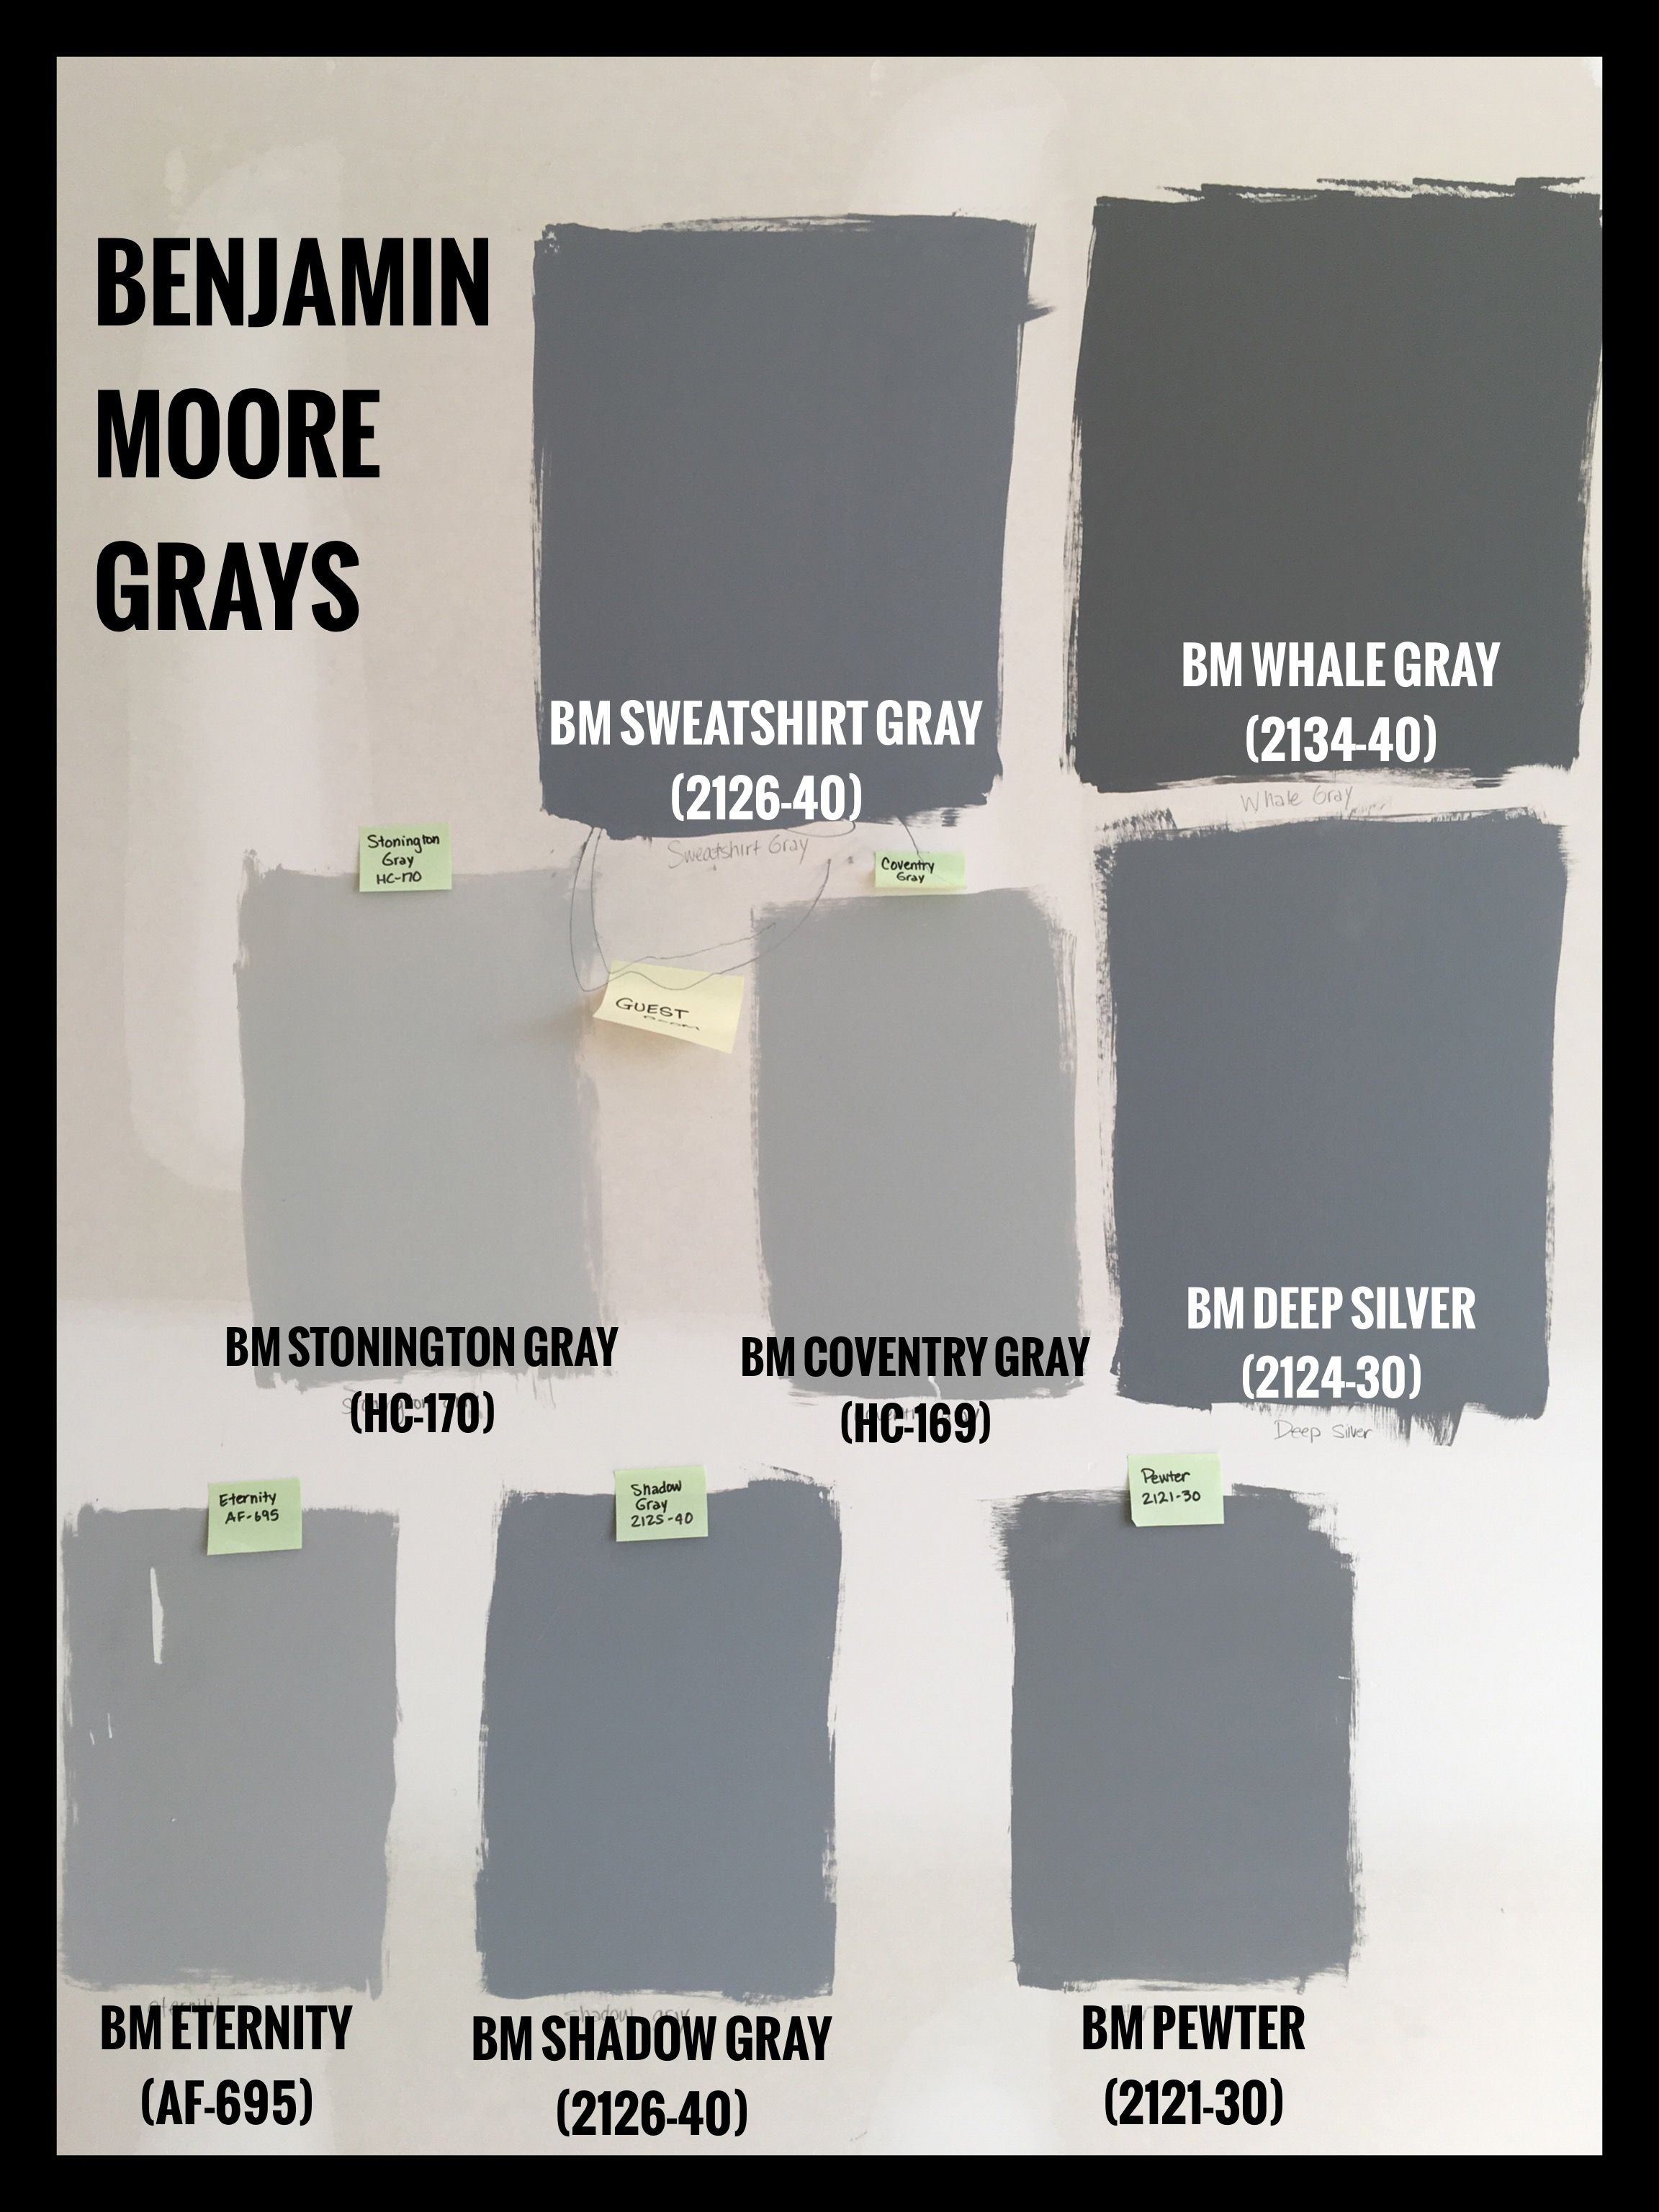 Benjamin Moore Gray Paint Swatches Bm Sweatshirt 2125 40 Whale 2134 Stonington Hc 170 Coventry 169